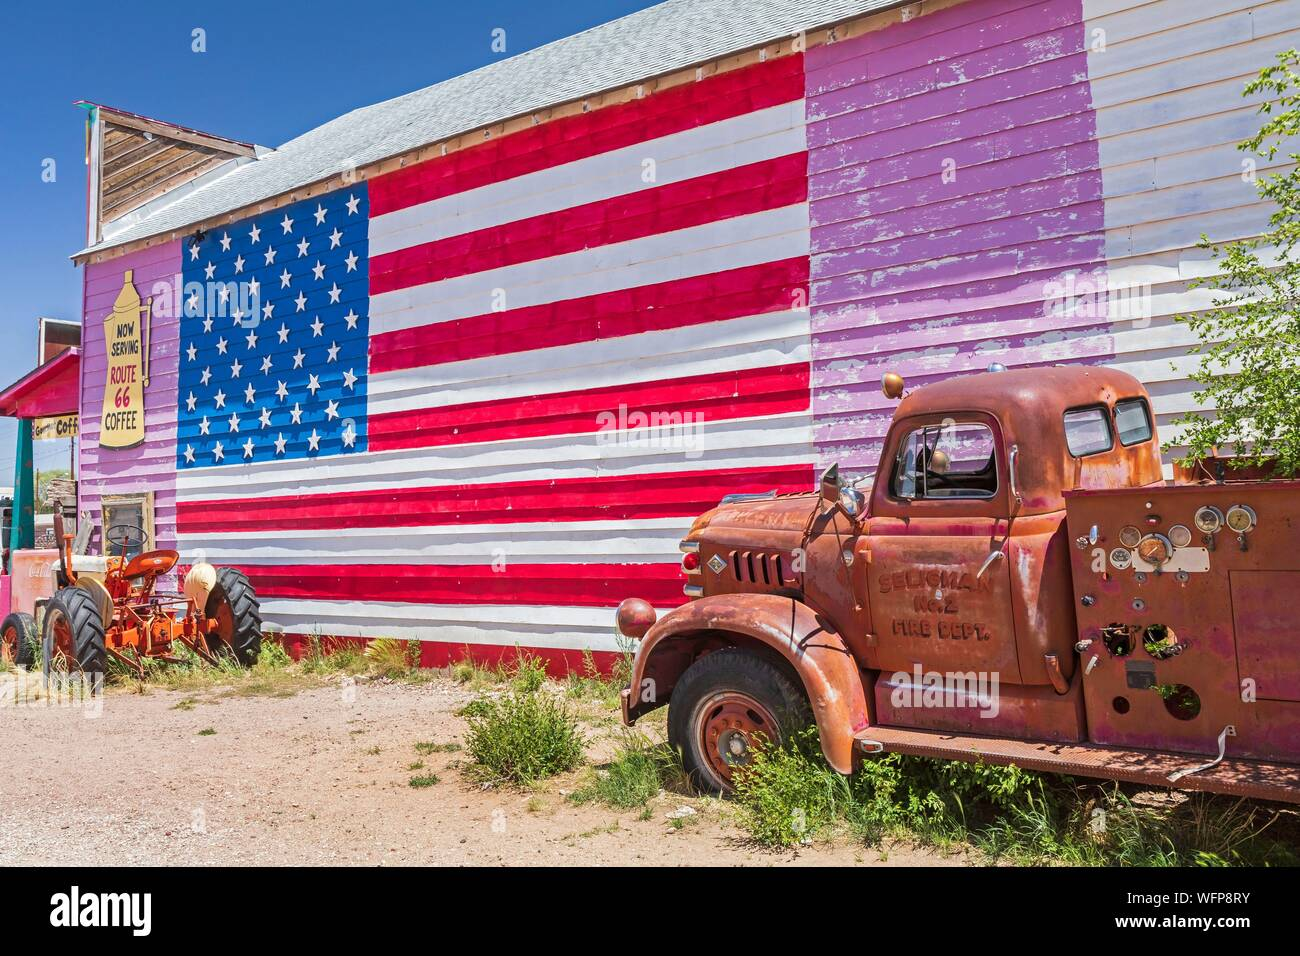 Truck With American Flag High Resolution Stock Photography And Images Alamy